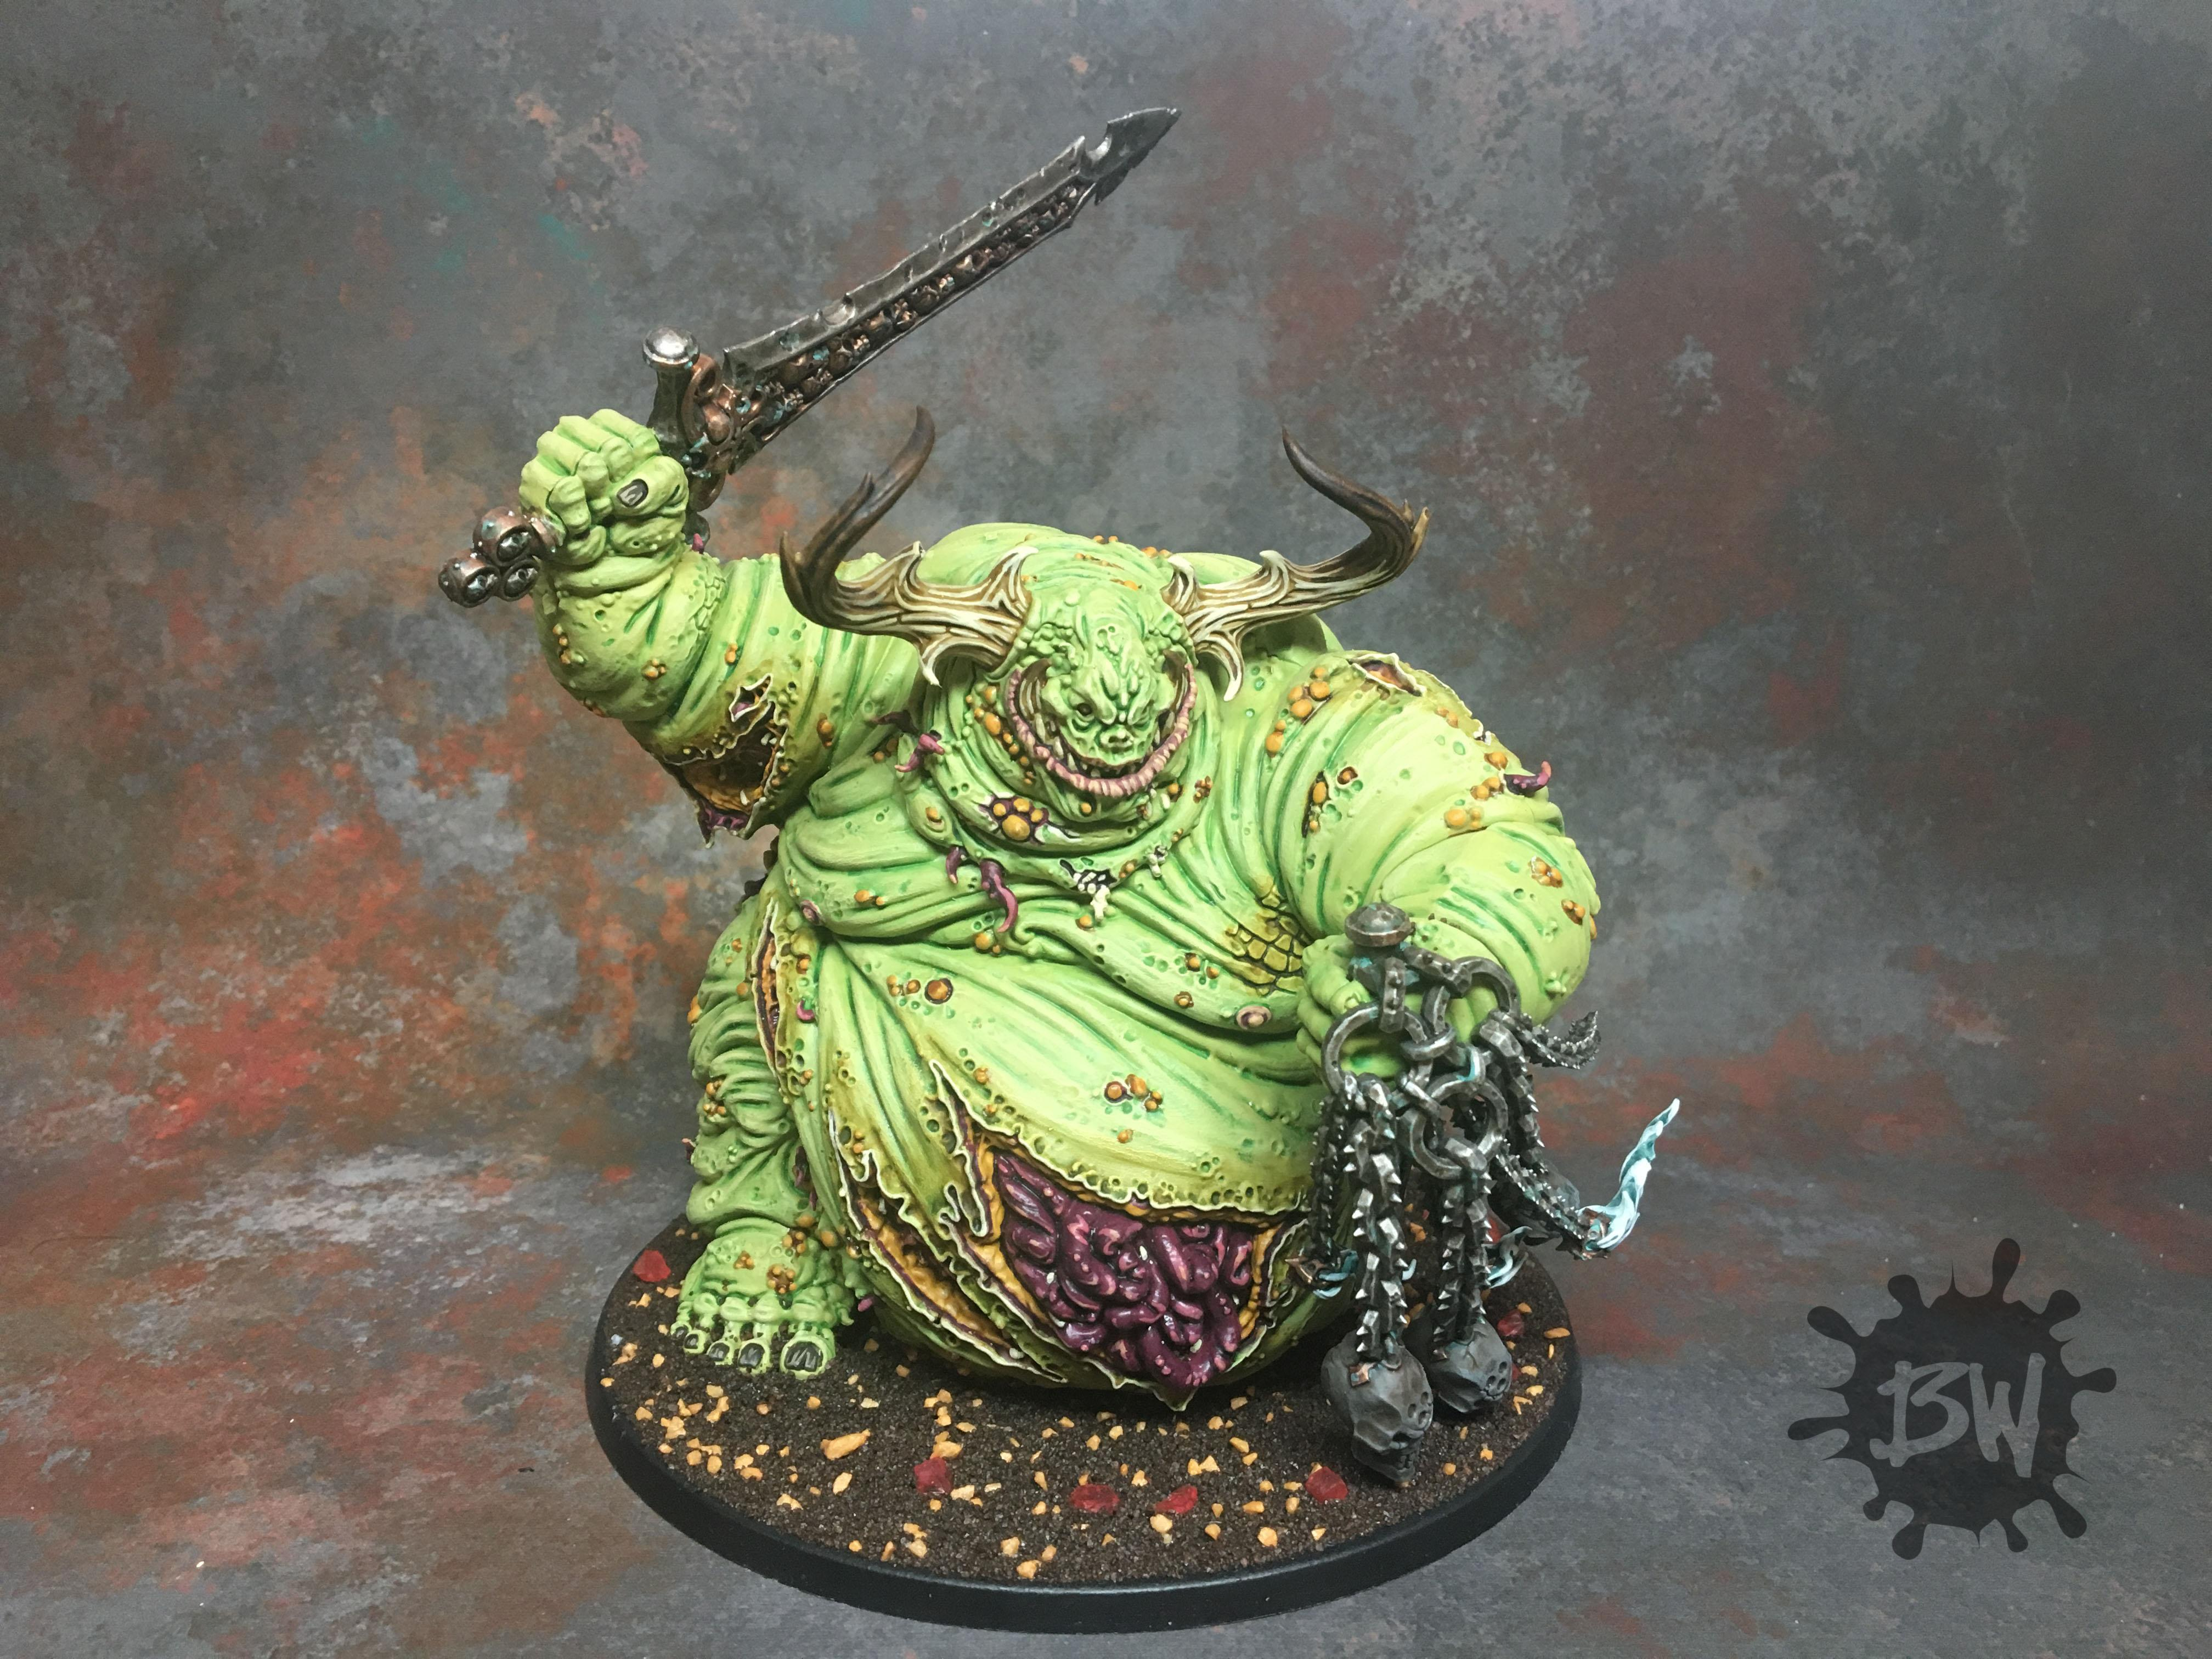 Chaos, Commission, Death Gard, Great Unclean One, Guo, Nurgle, Reat Unclean One, Warhammer 40,000